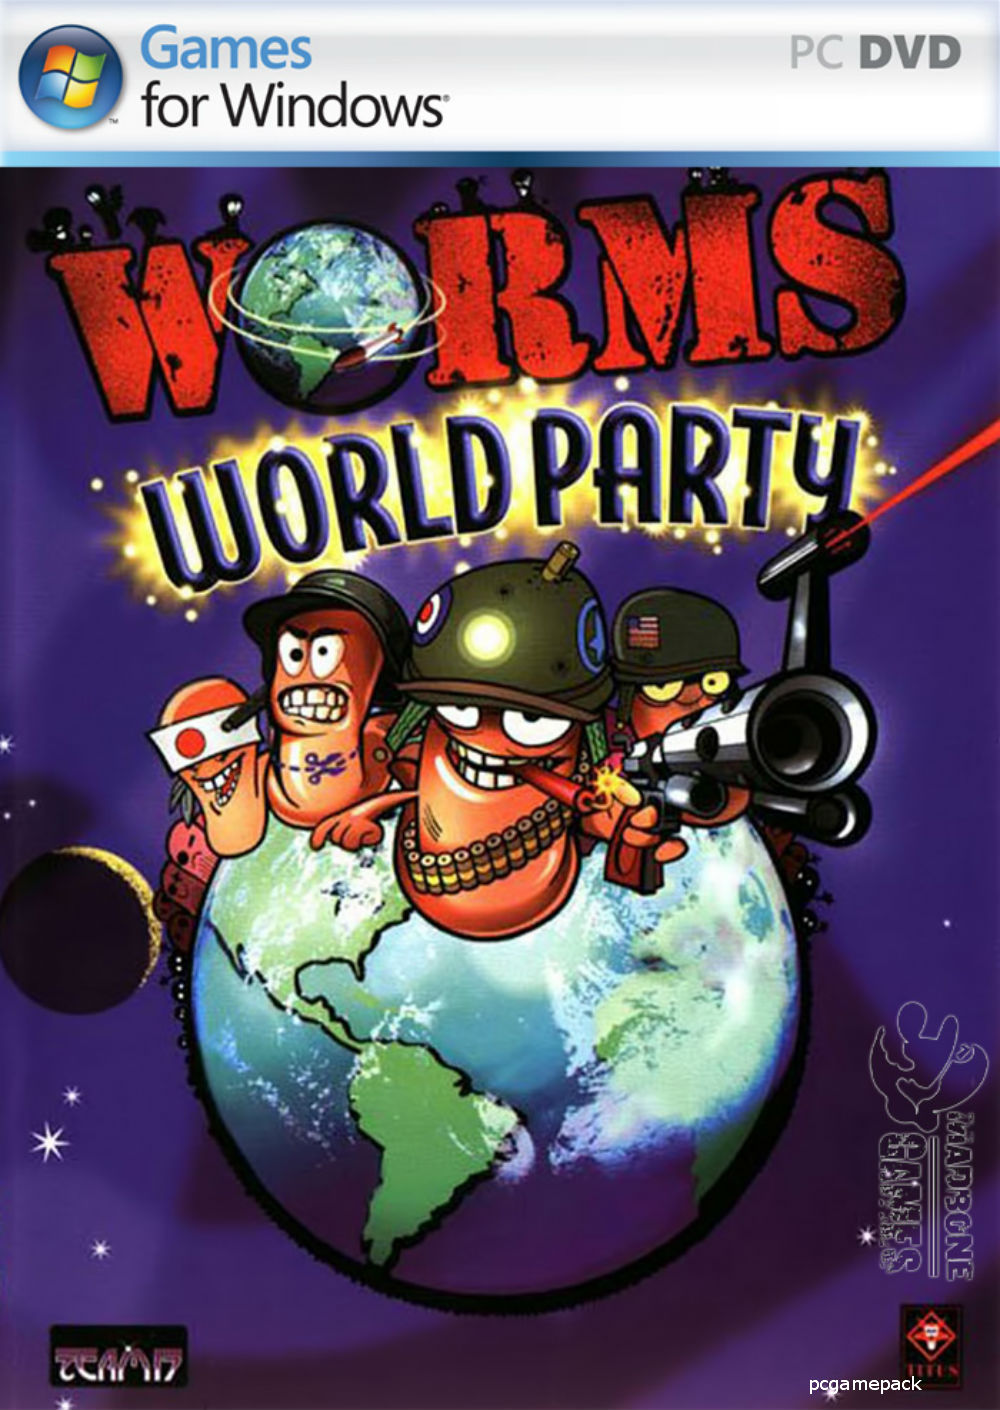 Worms world party free download. Worms world party free download.